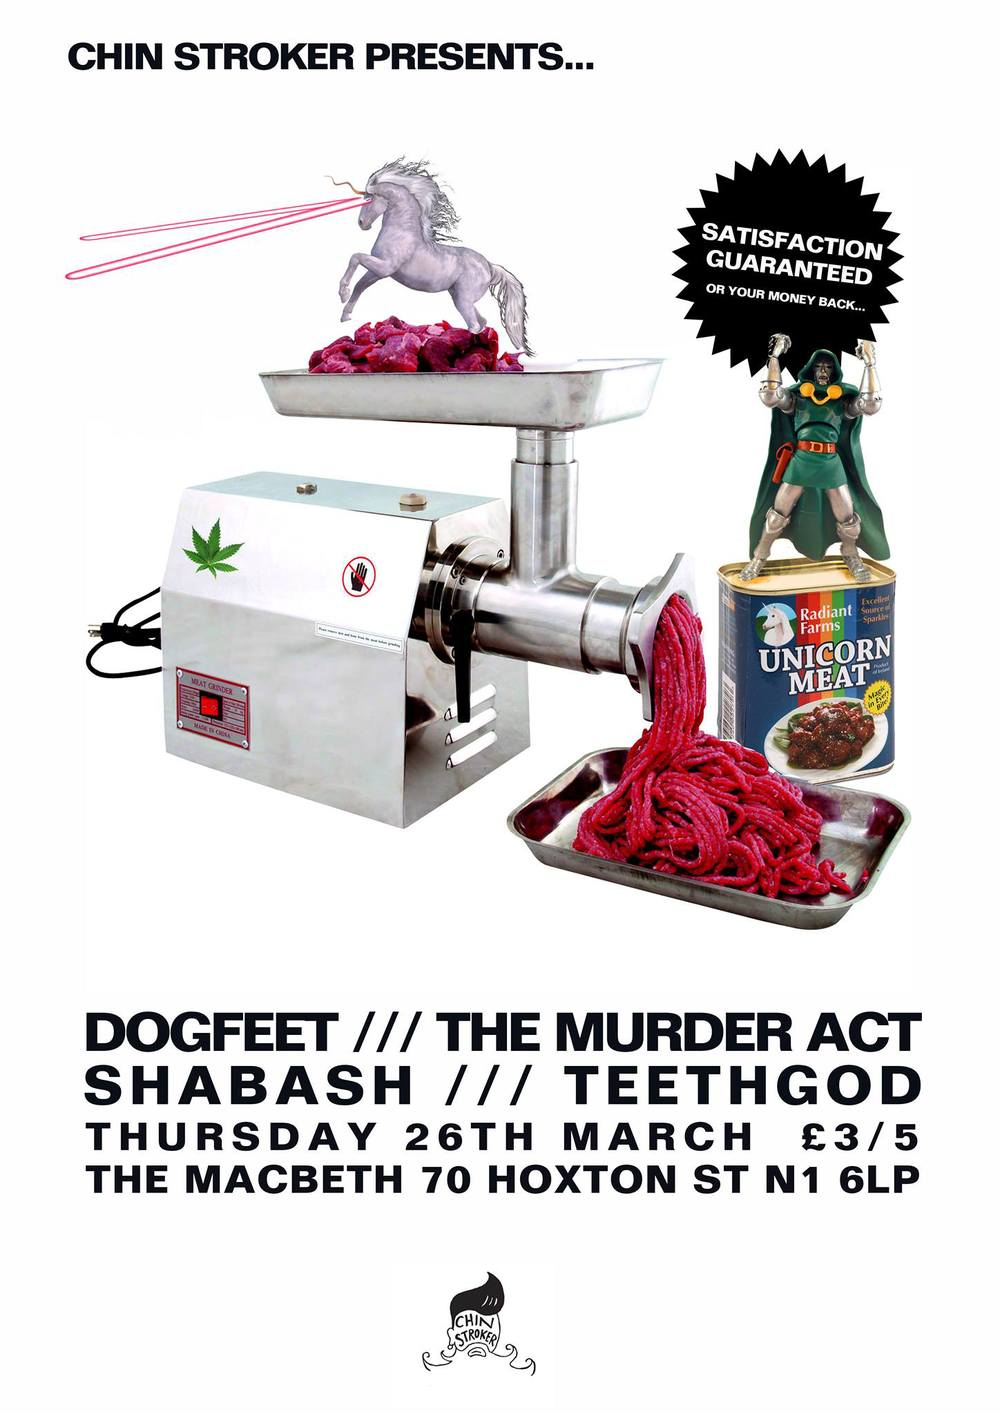 Love is in the air and incest in the undergrowth - it's all music to me ears... Something strange is happening at The Macbeth on the 26th March, a shapeshifting mass of musicians are taking to our stage - come, watch and listen as the drama unfolds... Starring Dogfeet  The Murder Act Shabash Teethgod PUFFER Djs will play the part of court jester and add their musical influences to the mixture through the means of the songs of others.  £3 Adv https://billetto.co.uk/en/events/cs-dogfeet-the-murder-act-shabash-teethgod £5 OTD